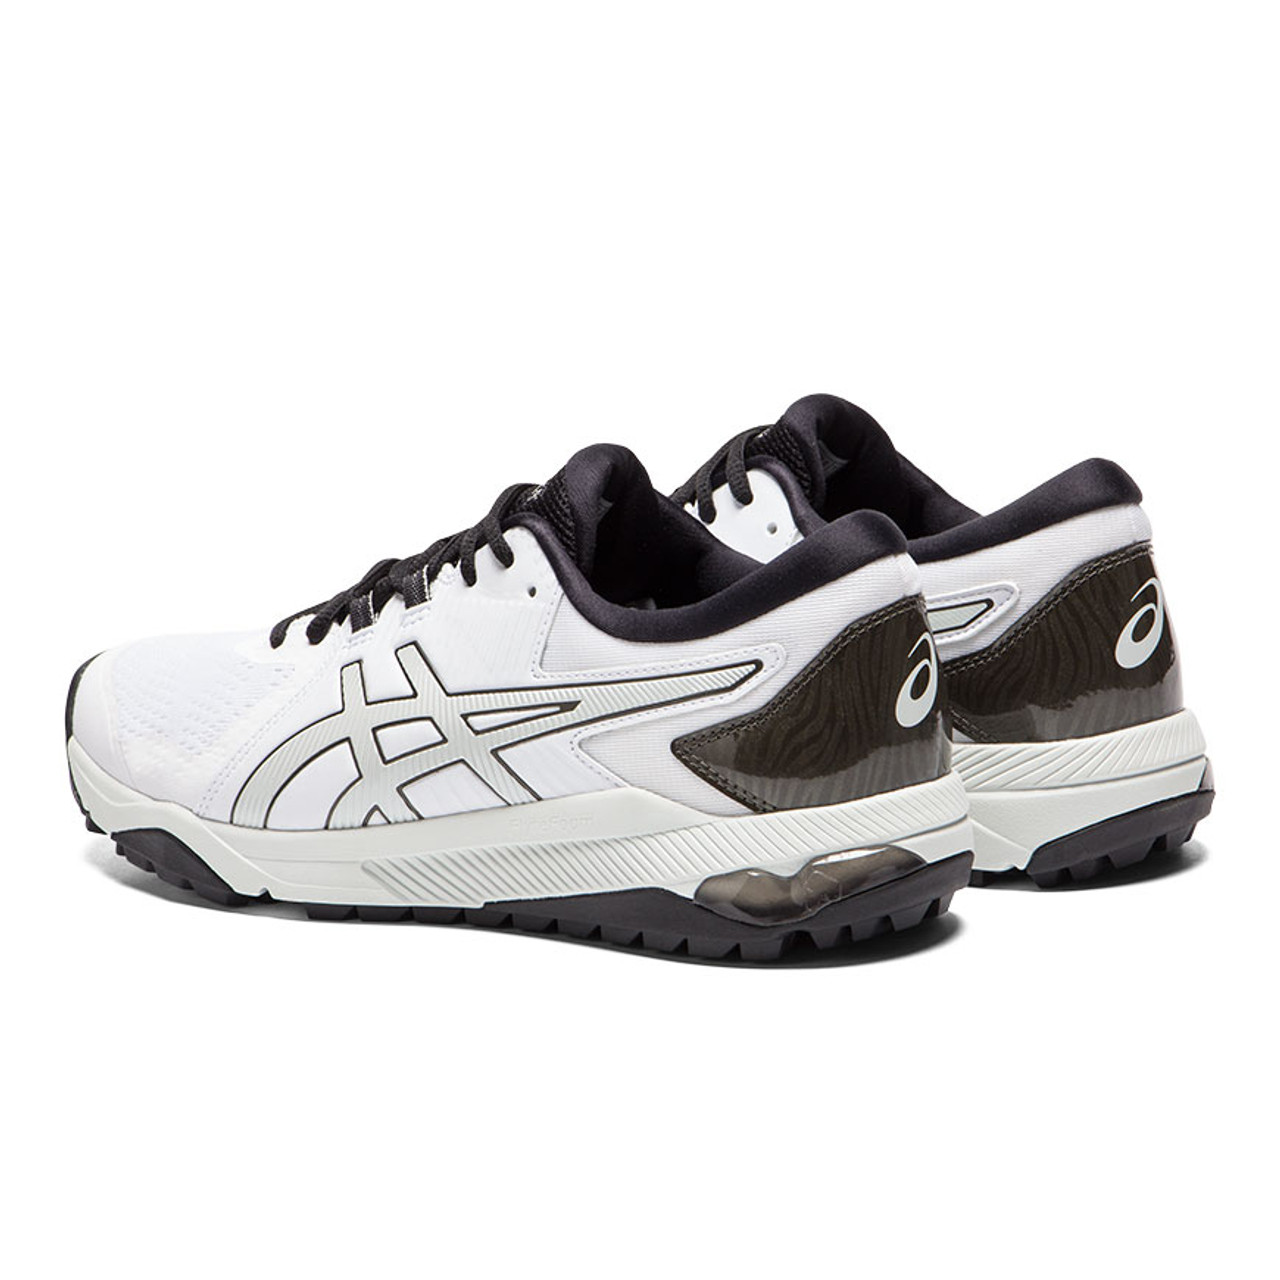 Asics Gel-Course Glide Golf Shoes - White / Silver / Black